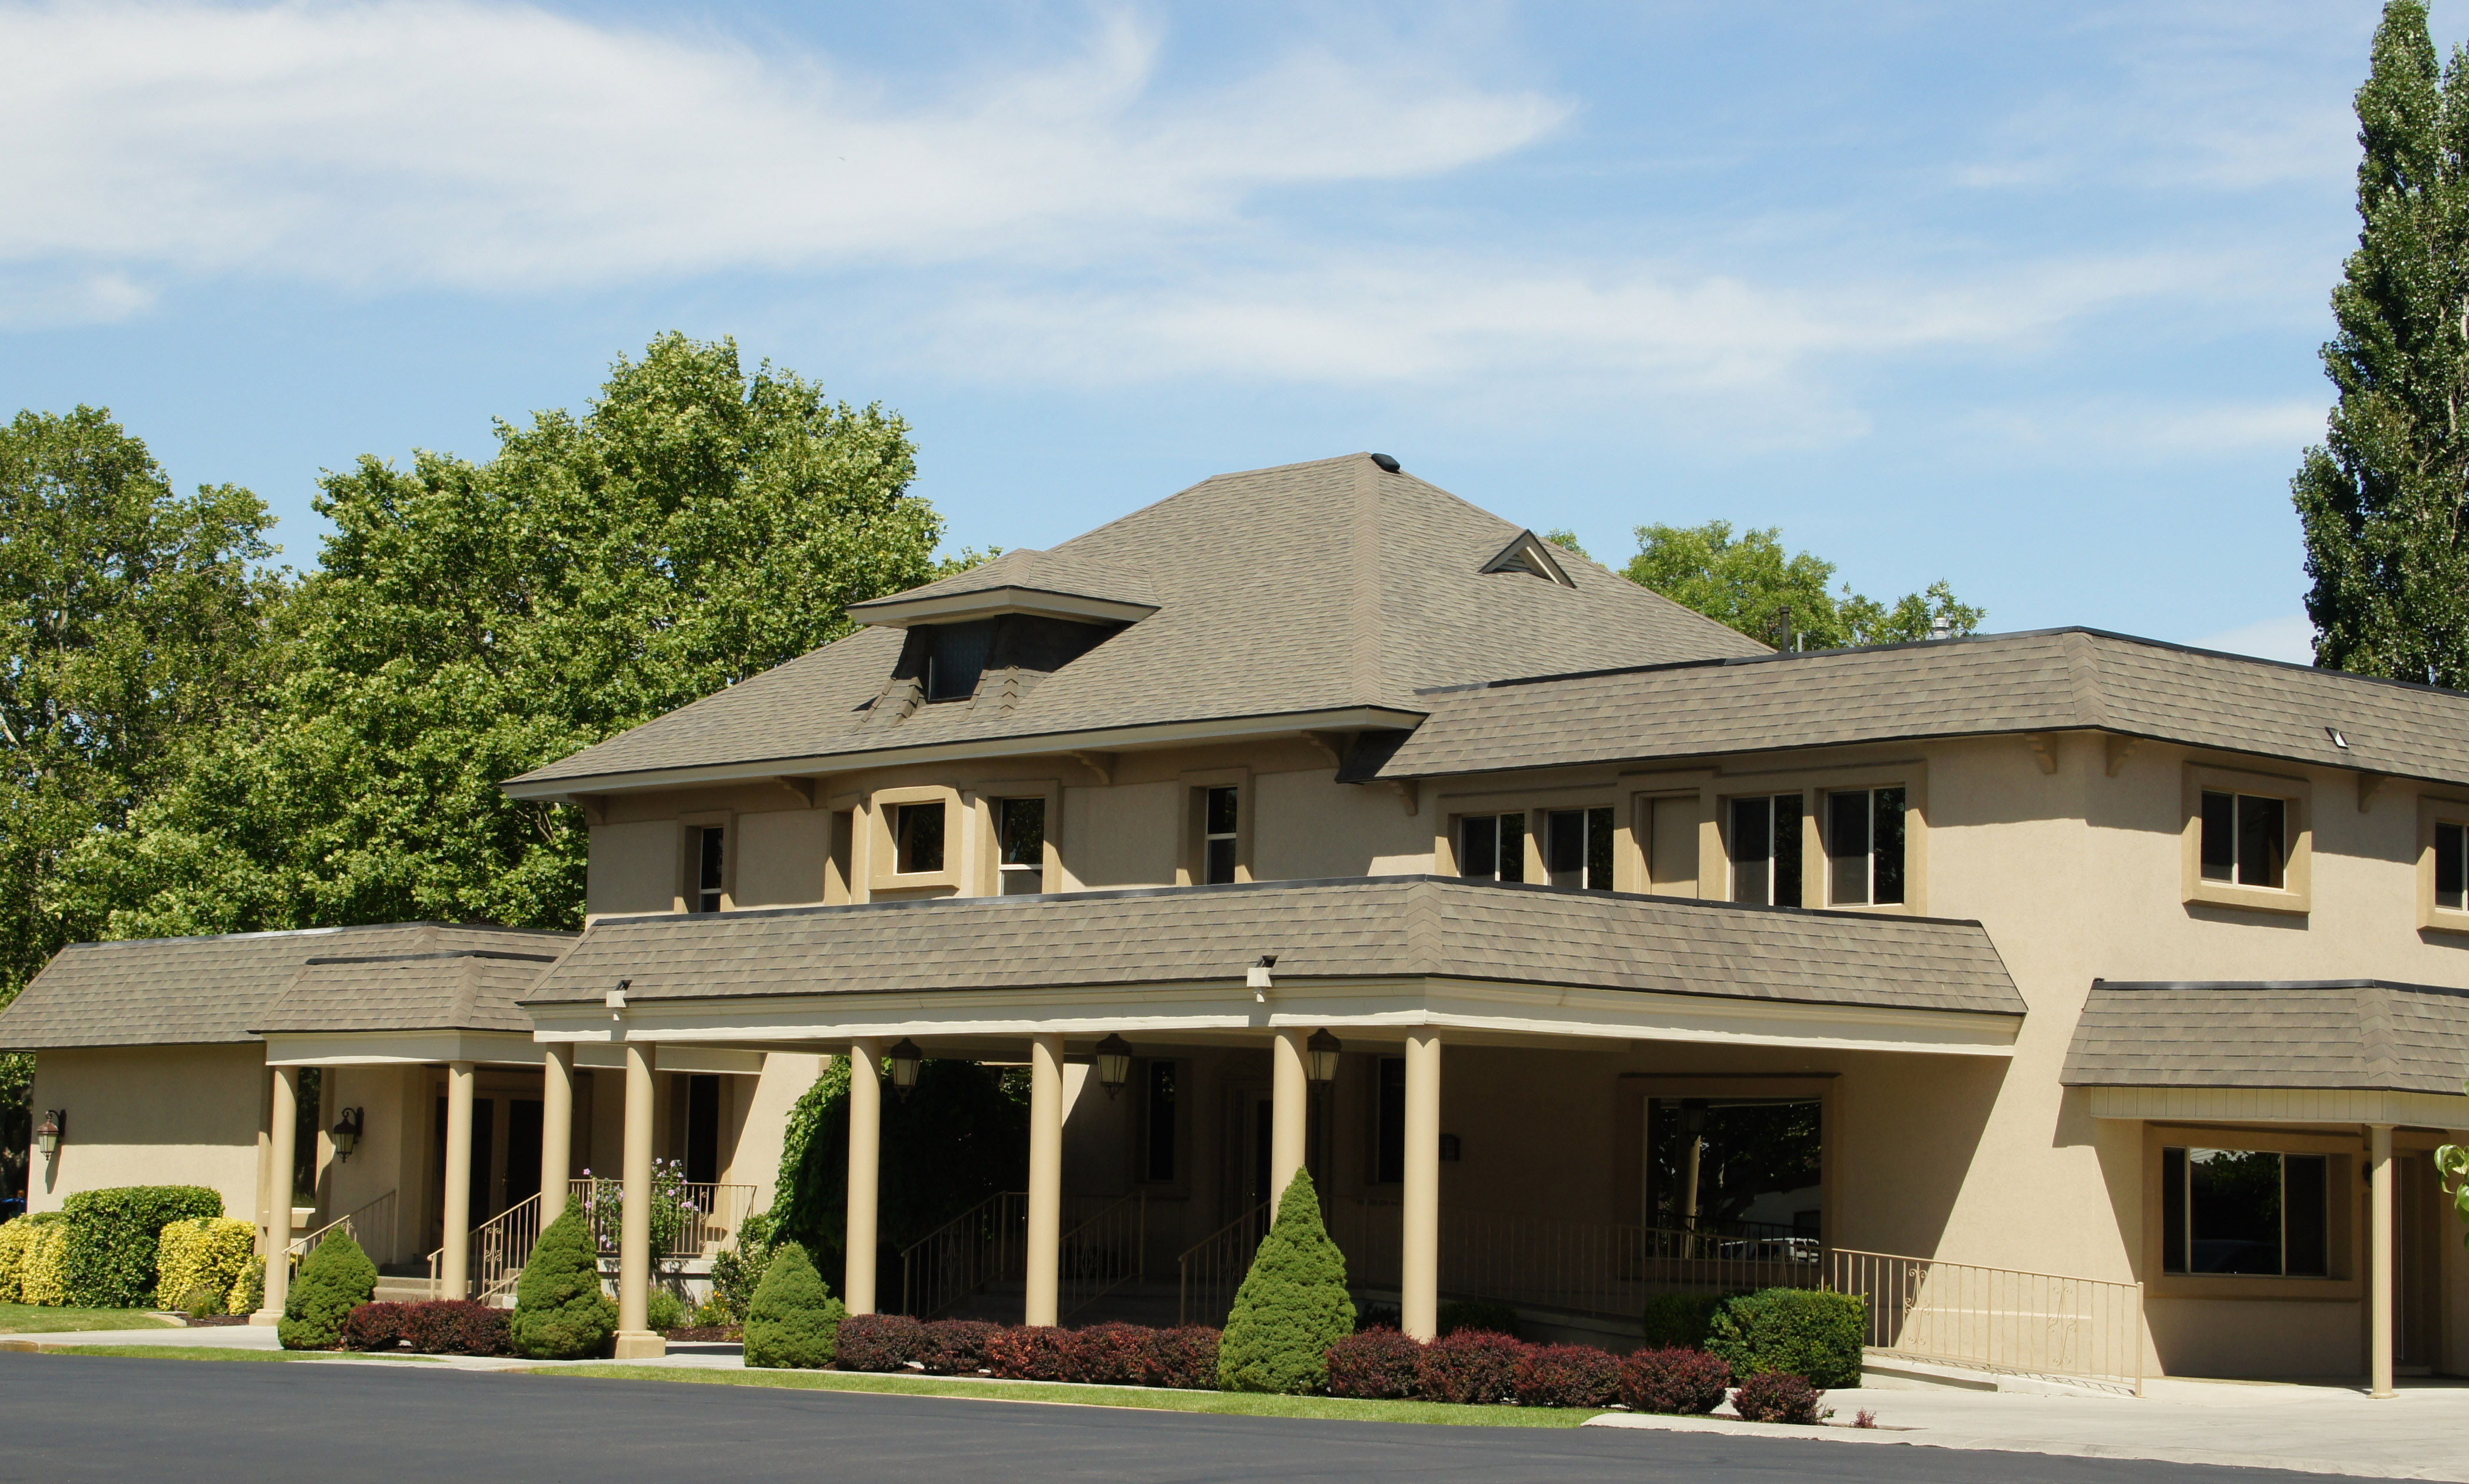 Spanish Fork Funeral Home